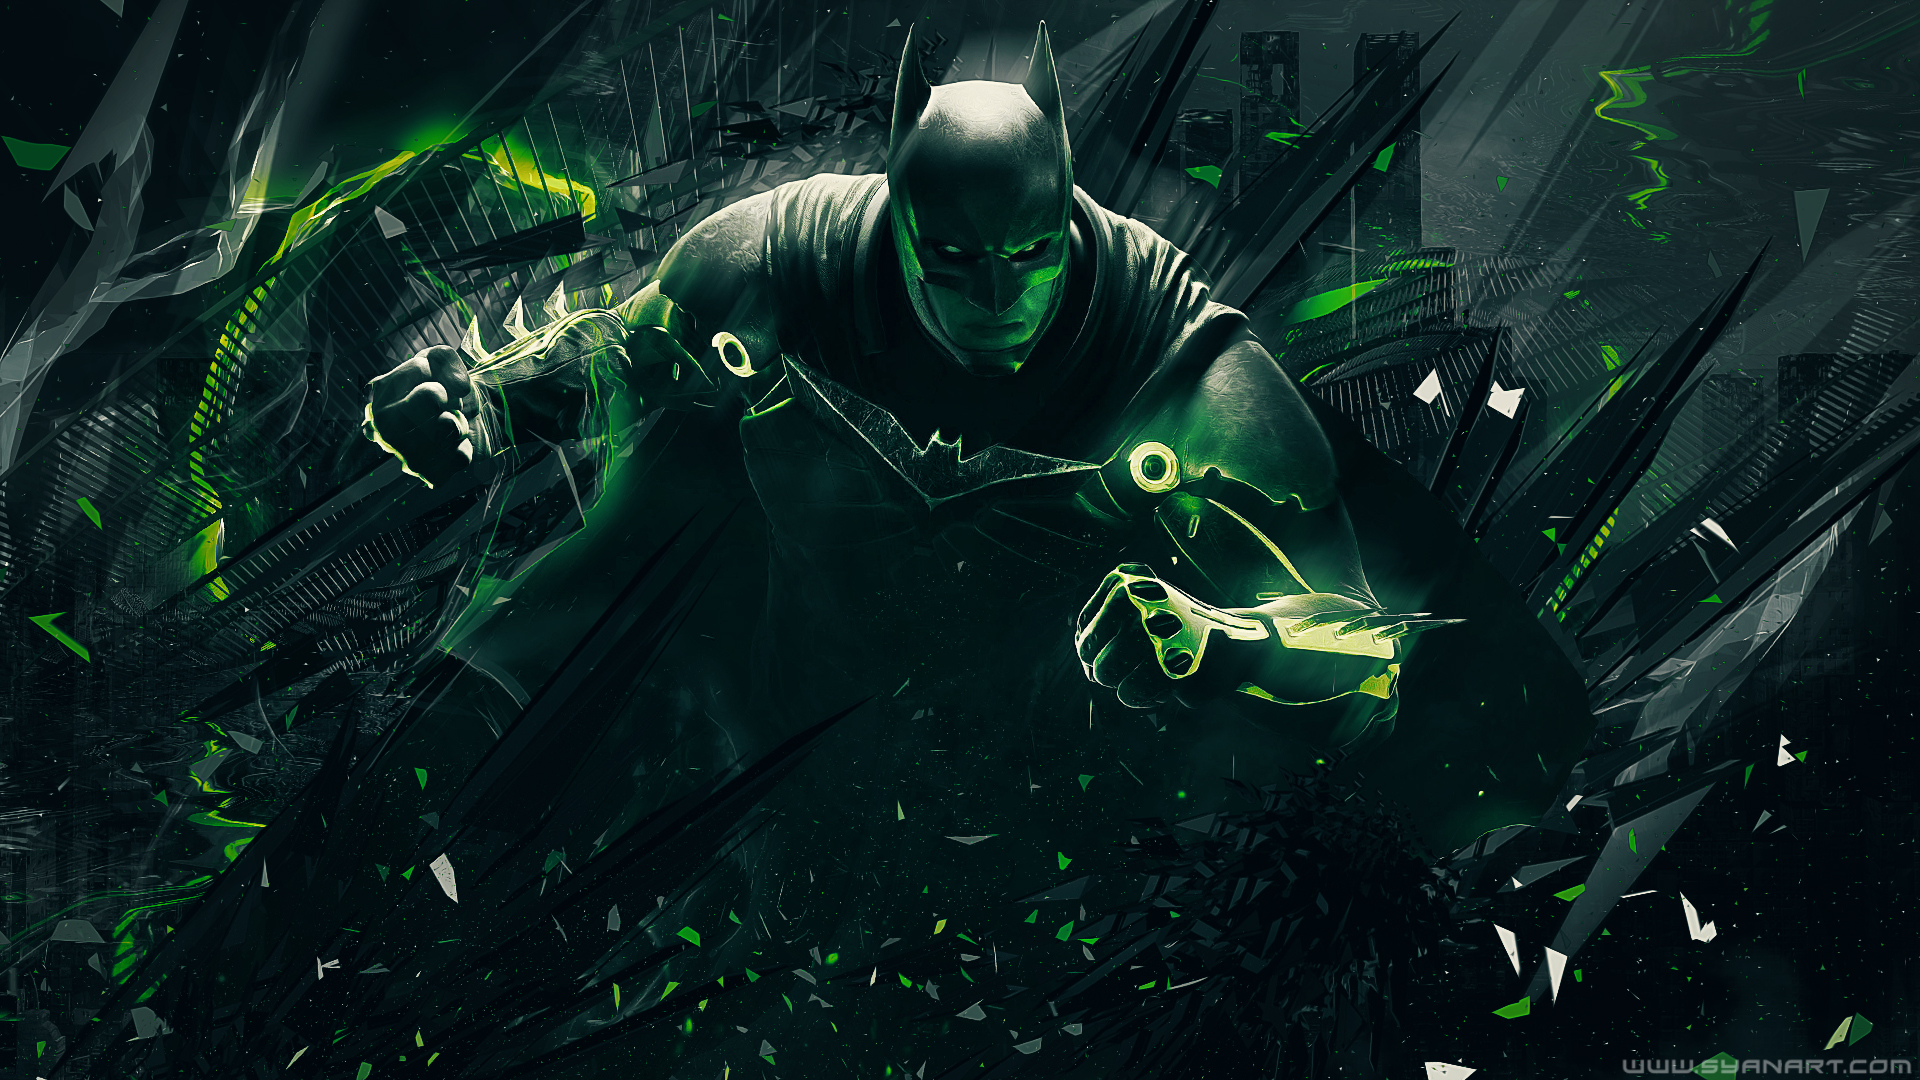 Injustice 2 wallpapers pictures images injustice 2 full hd wallpaper voltagebd Choice Image